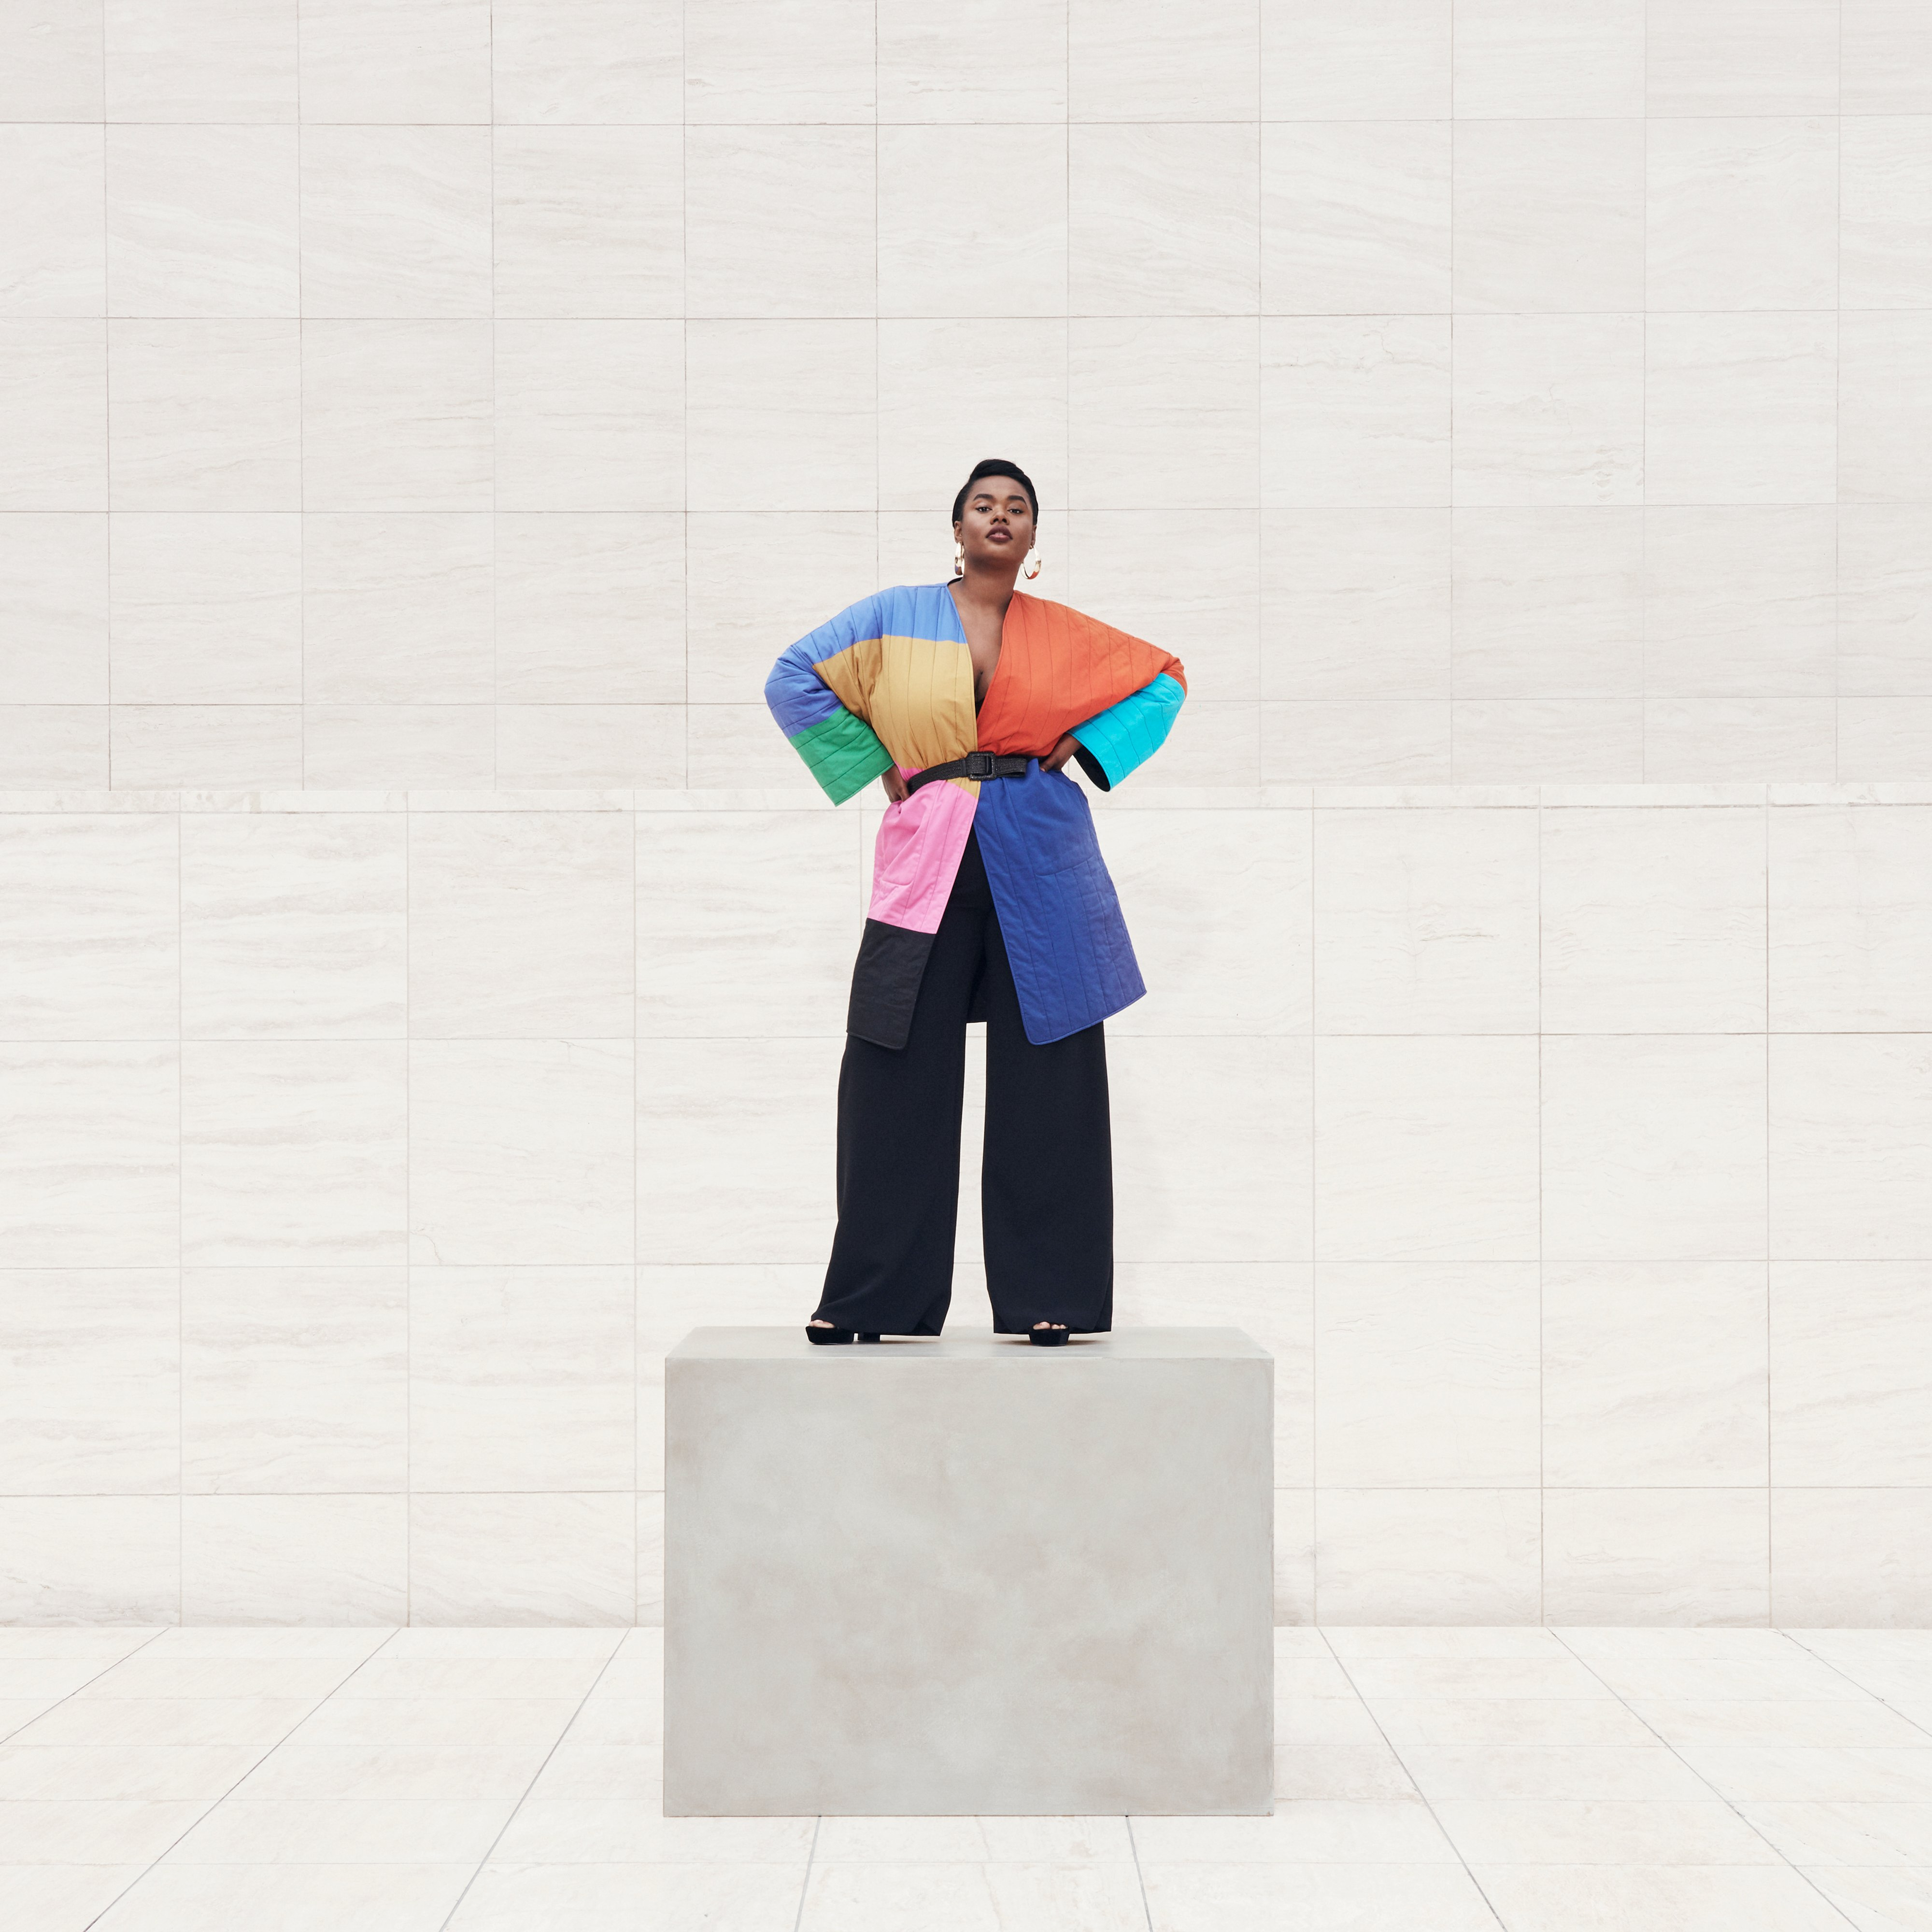 Model Precious Lee wearing color-blocked coat, Ad campaign. Art Direction by RoAndCo